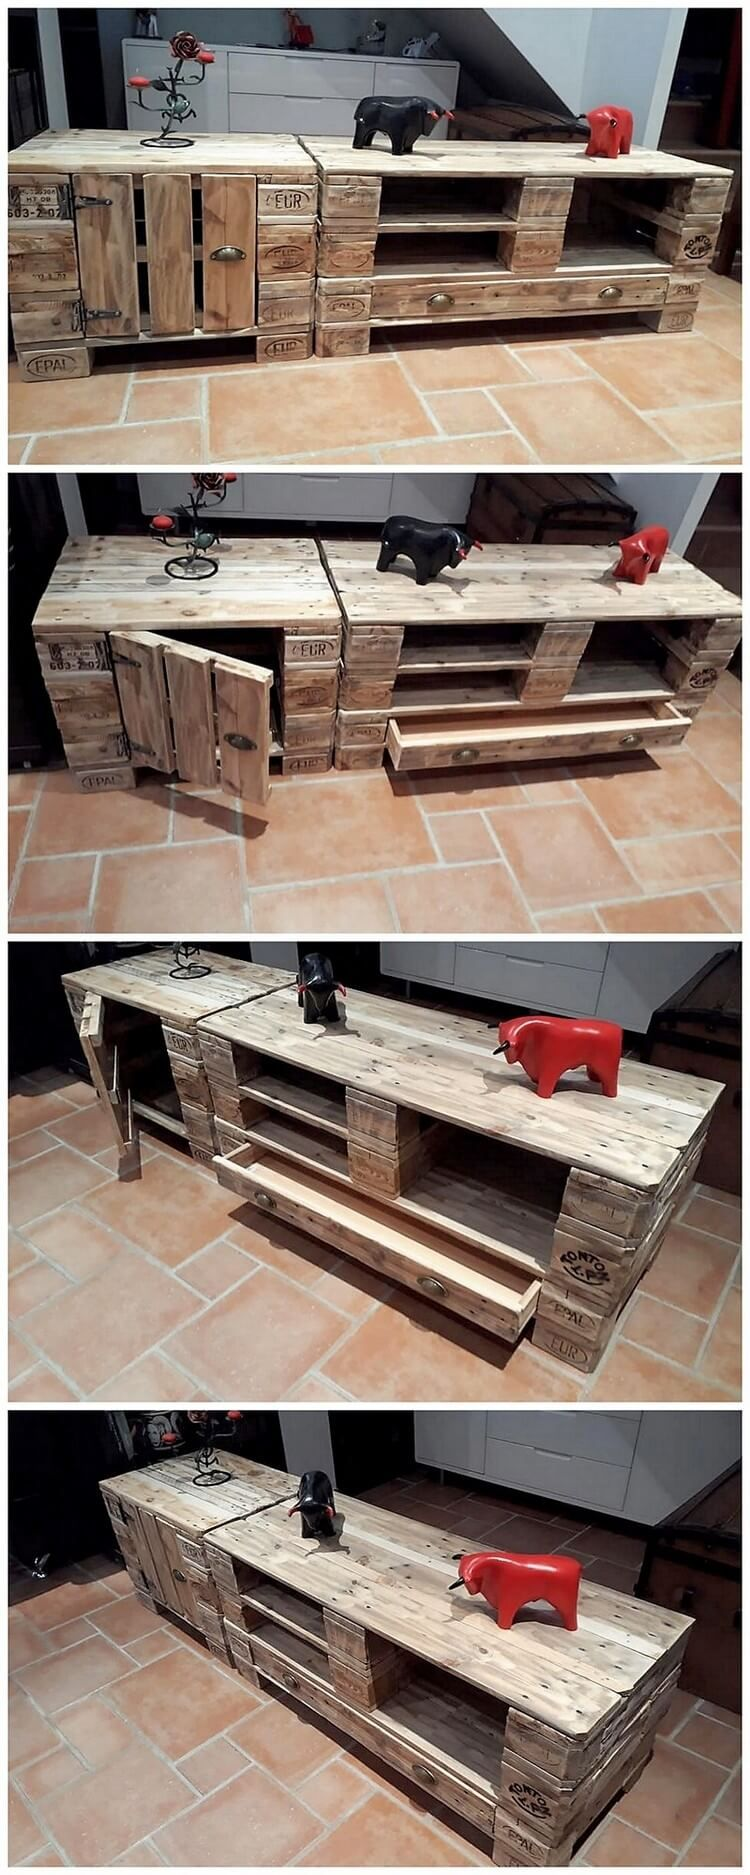 Here comes the pallet media table option